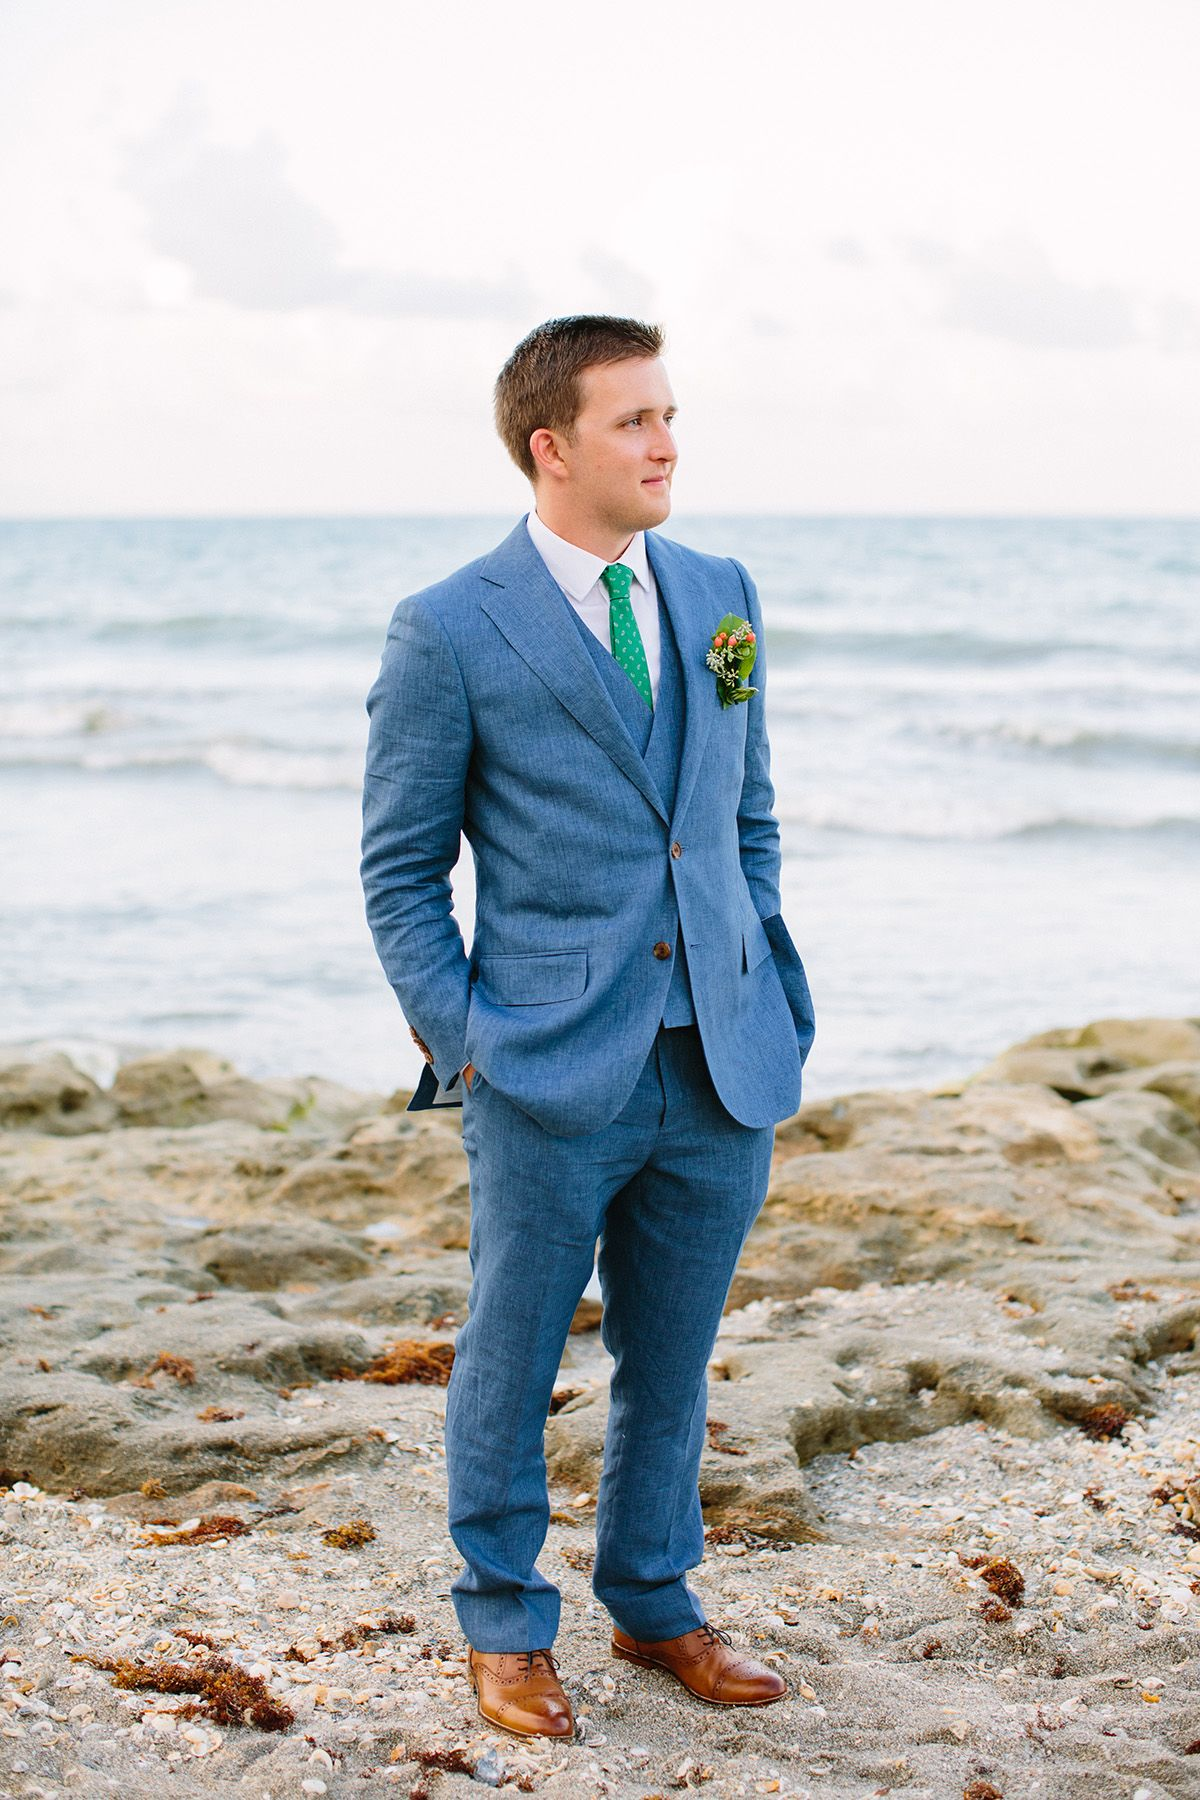 Colorful Beach Wedding: Paige & Adam at the Jupiter Beach Resort ...